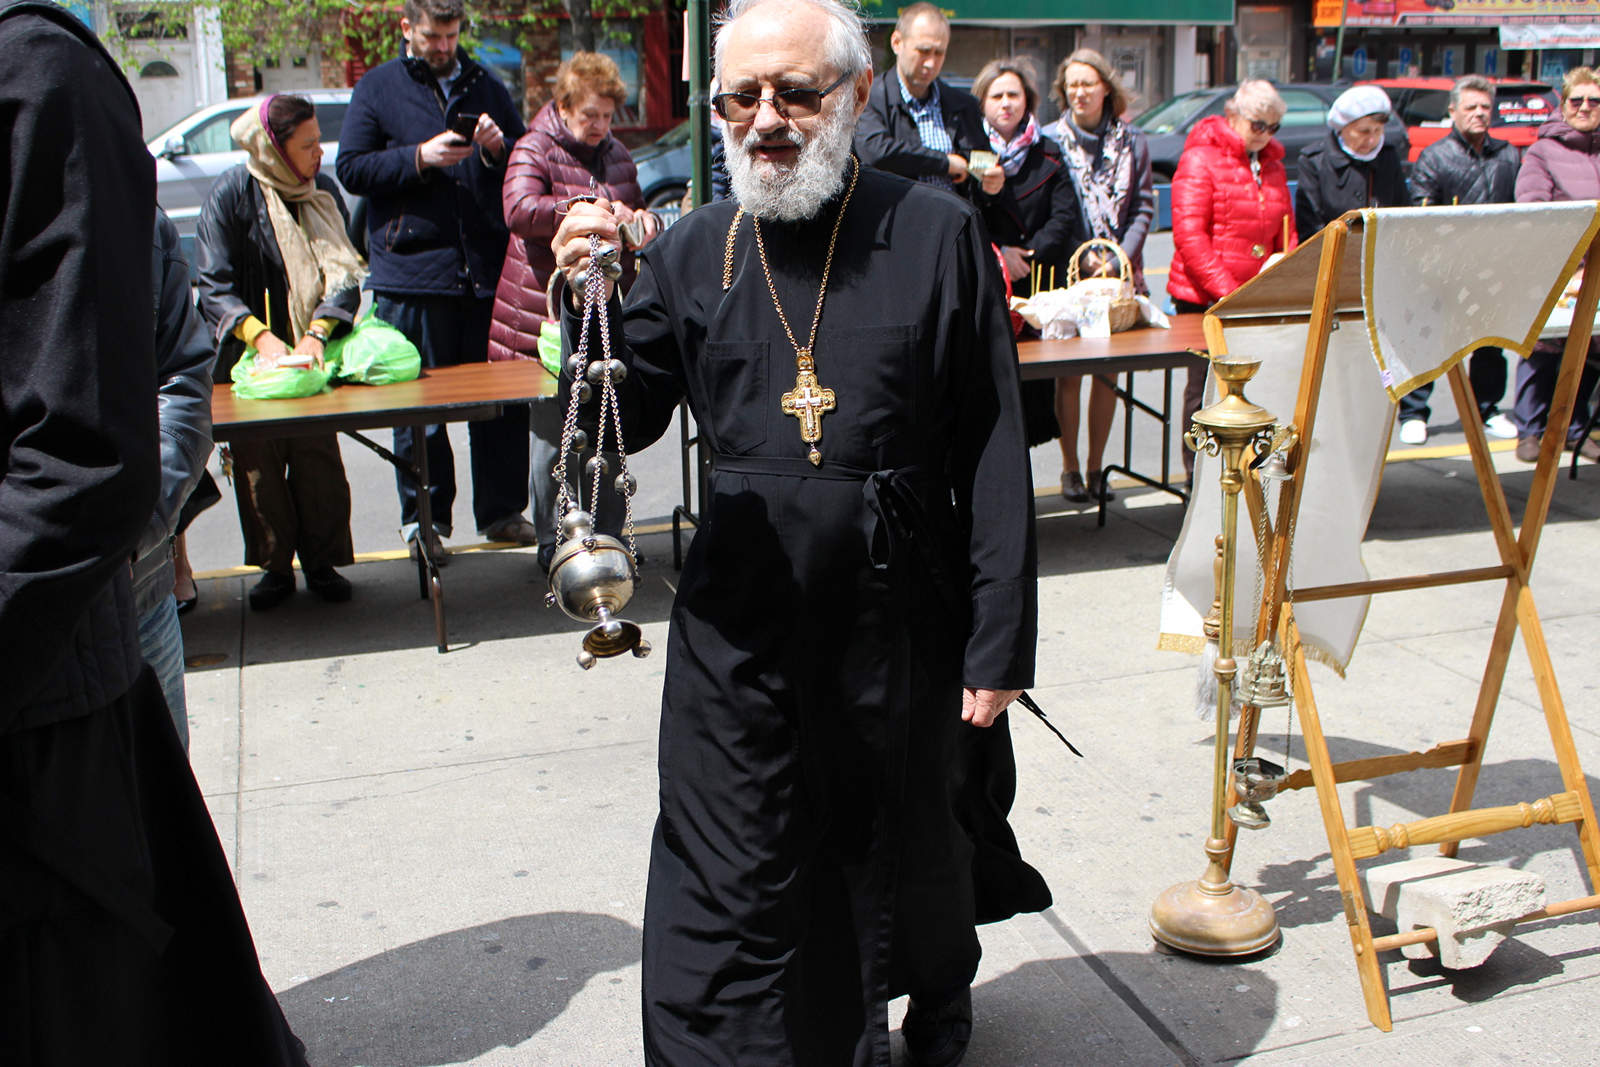 Hristos-Voskres_Brooklyn_28-04-2019_23